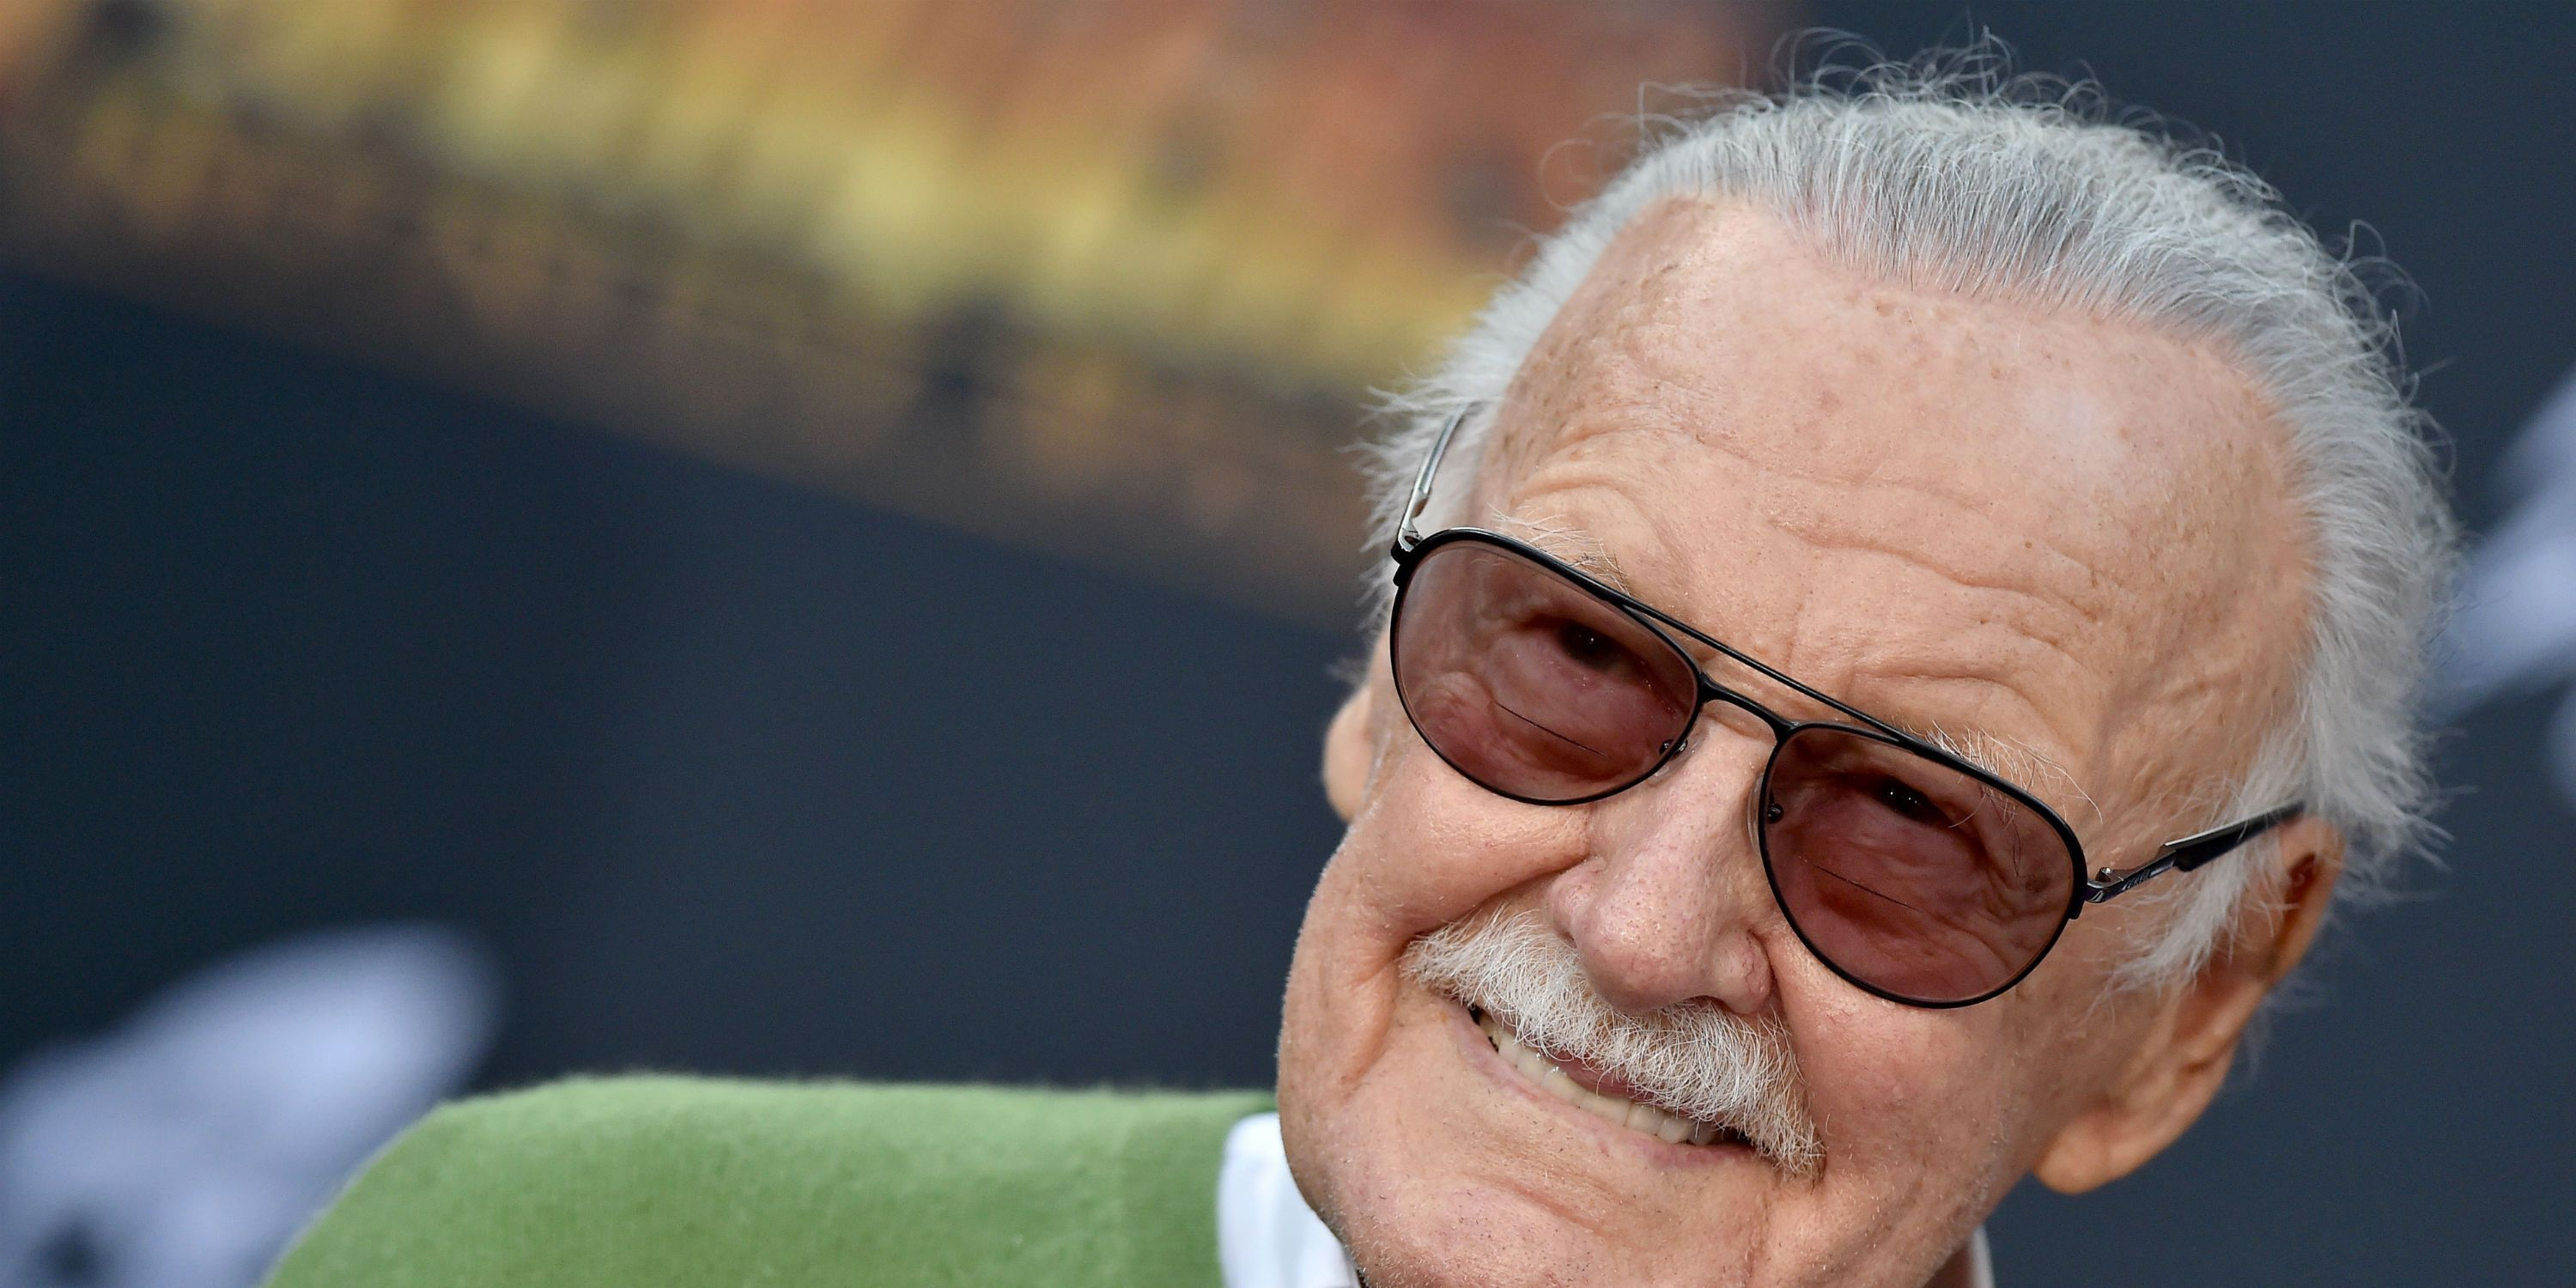 Stan Lee attends the premiere of Avengers: Infinity War